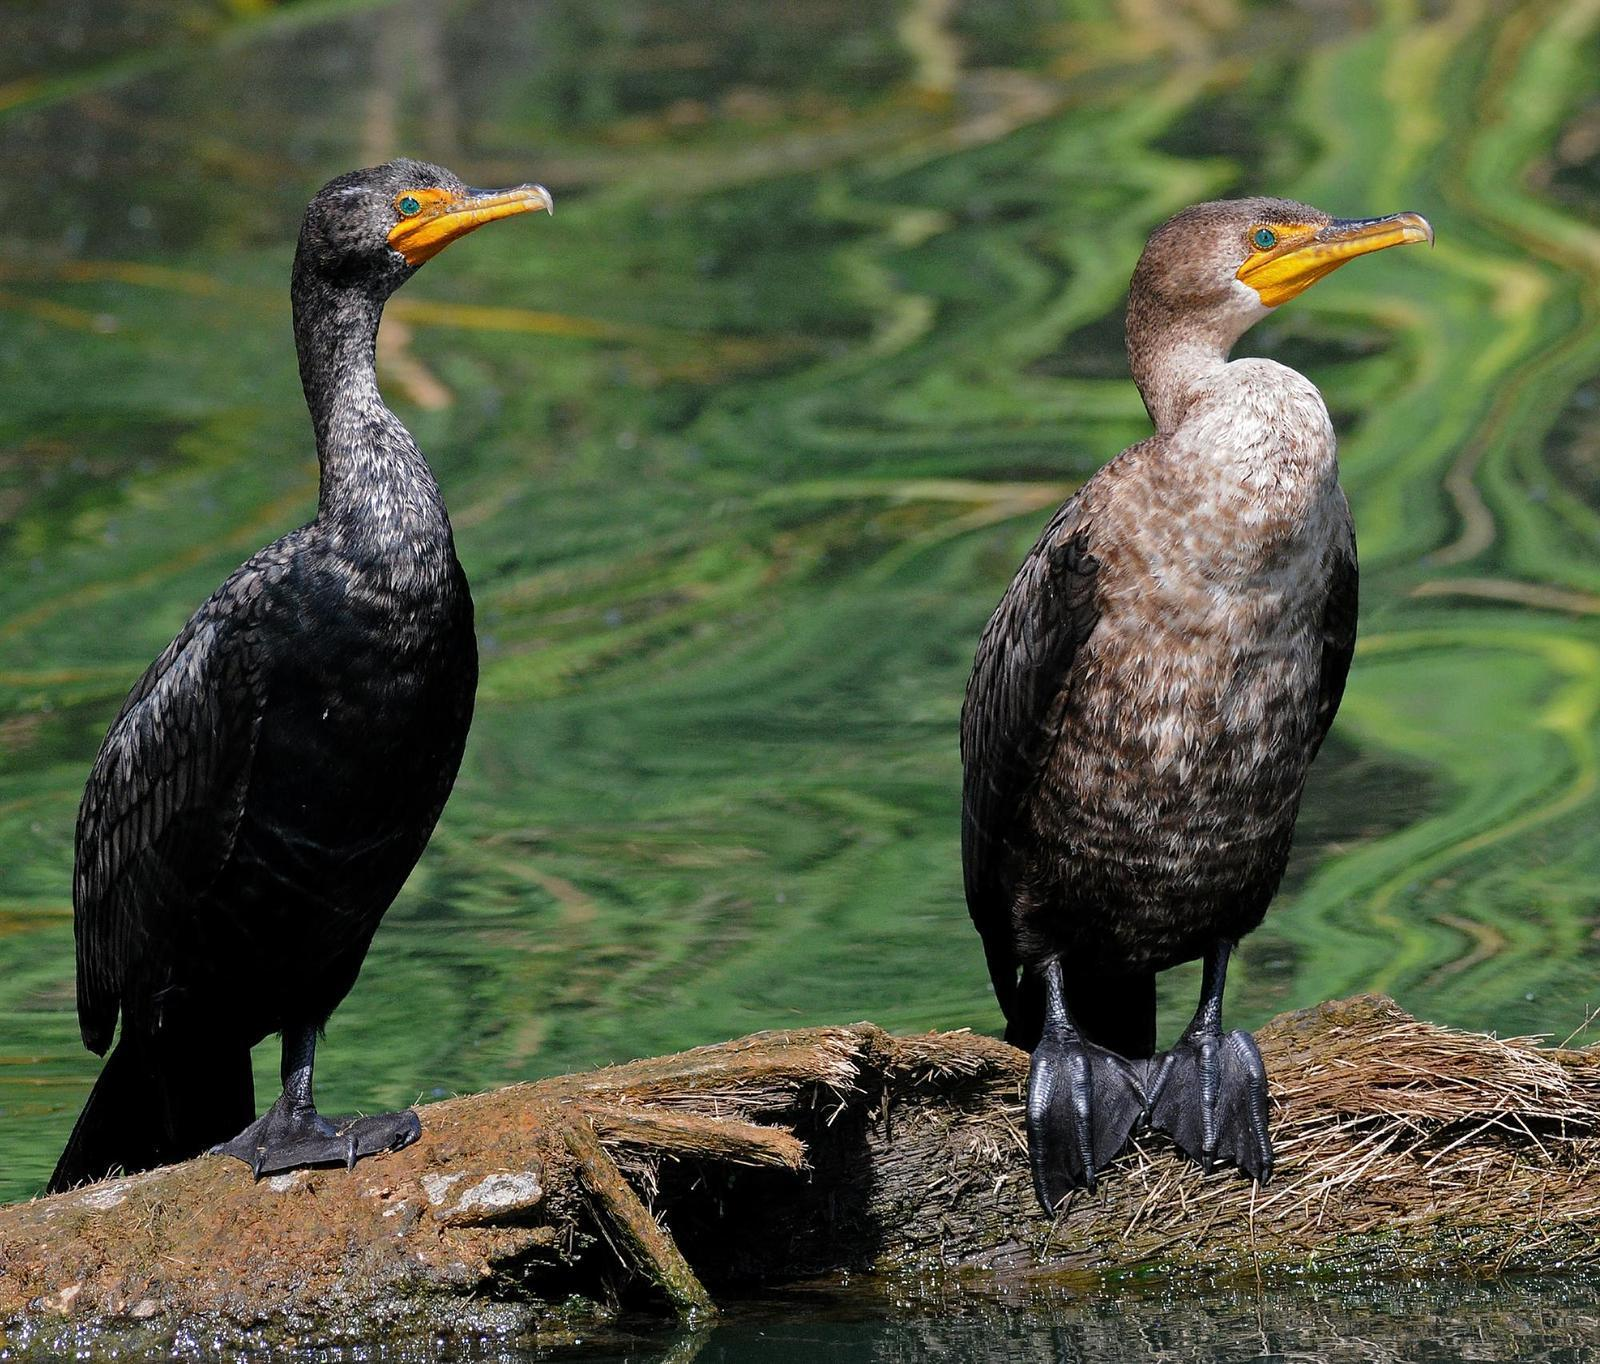 Double-crested Cormorant Photo by Steven Mlodinow